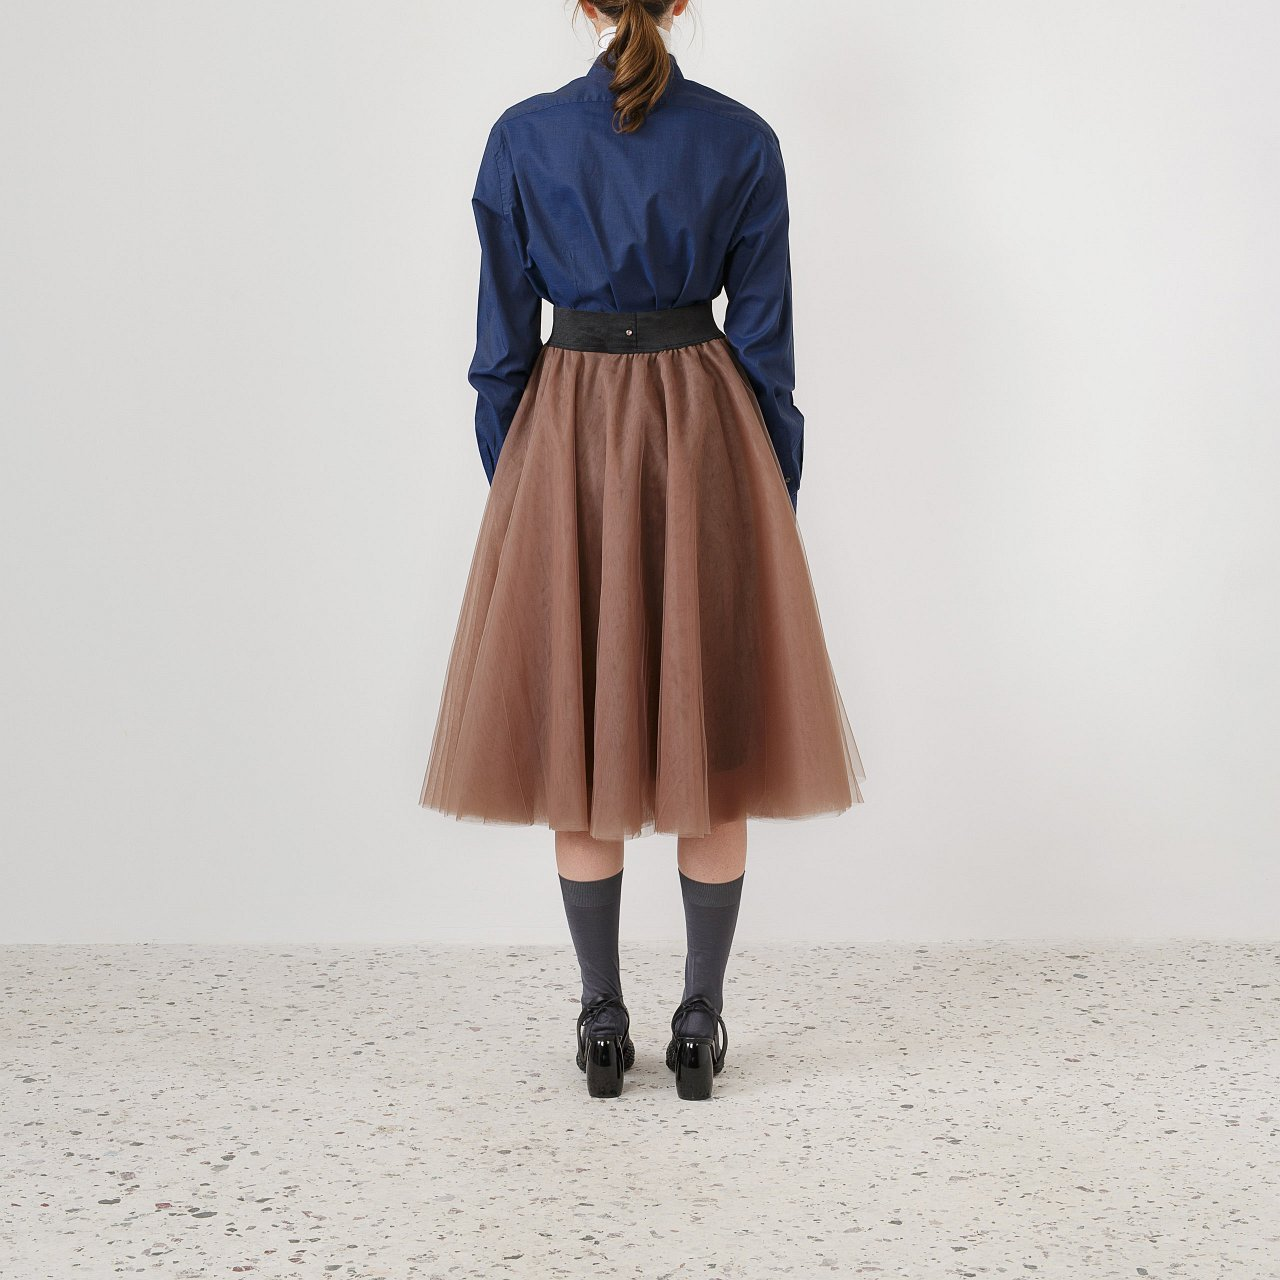 Product preview: Tulle Tutu Skirt Brown Midi